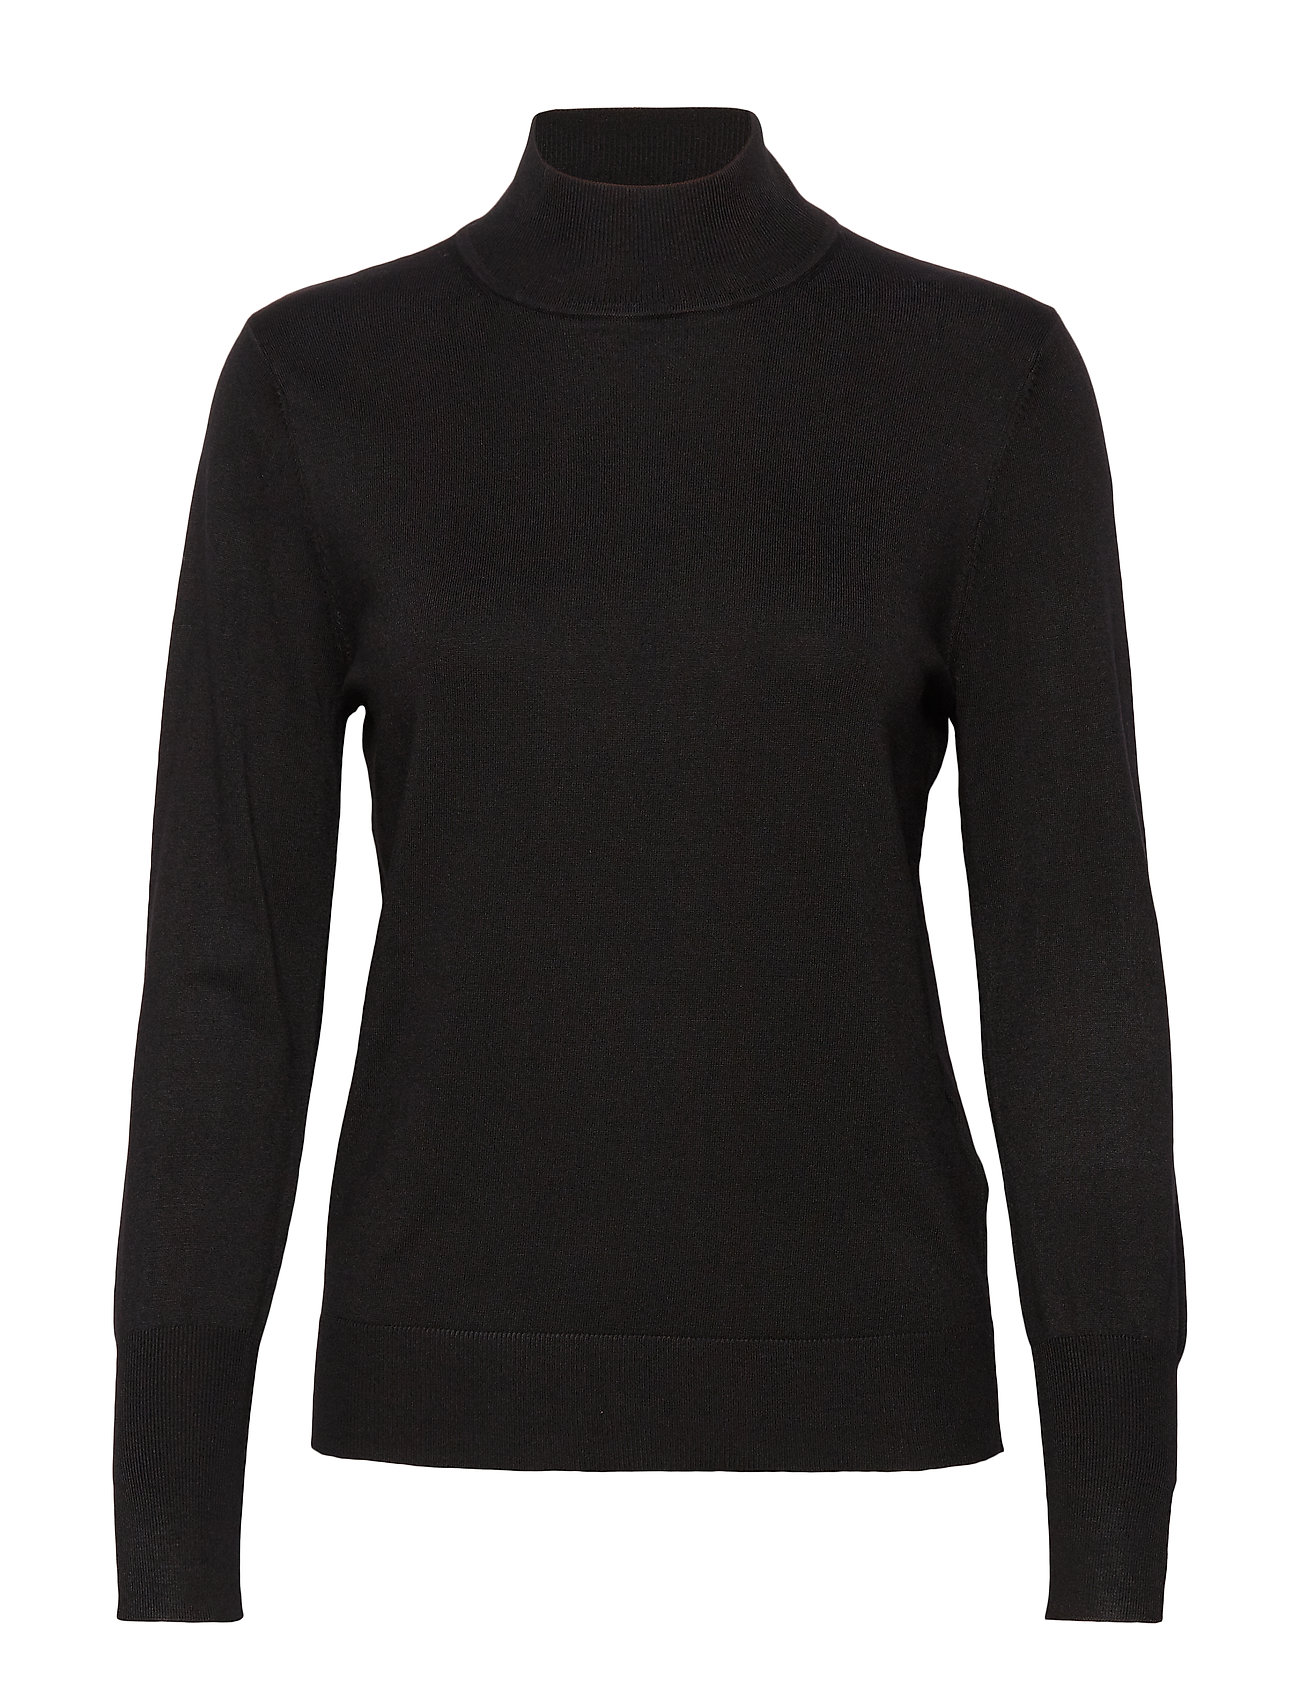 Gerry Weber PULLOVER LONG-SLEEVE - BLACK